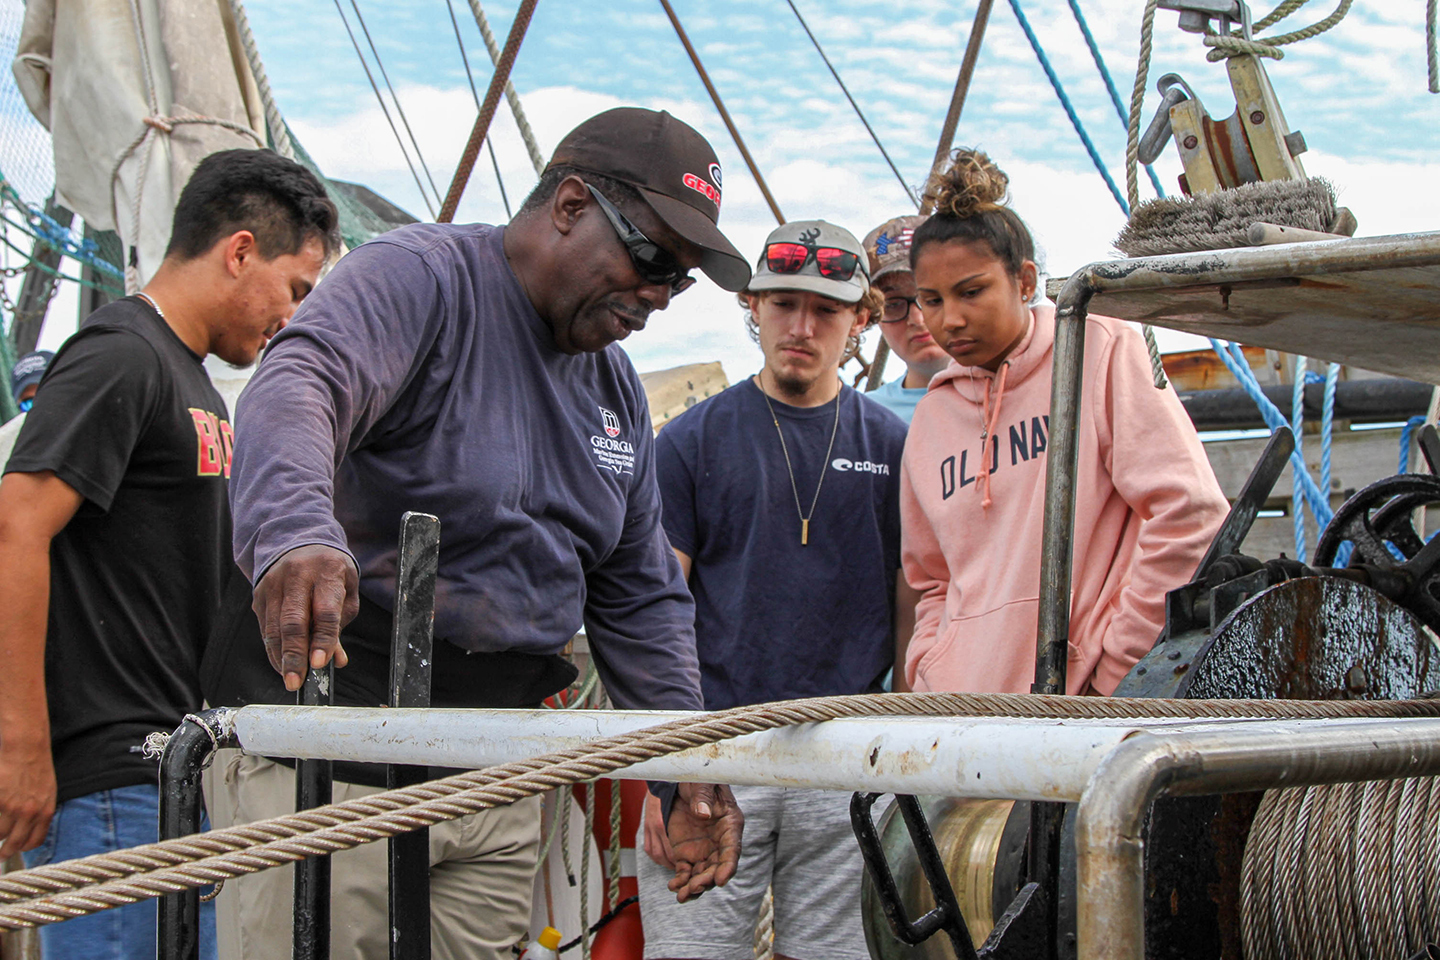 A teacher showing students a rope system on a boat